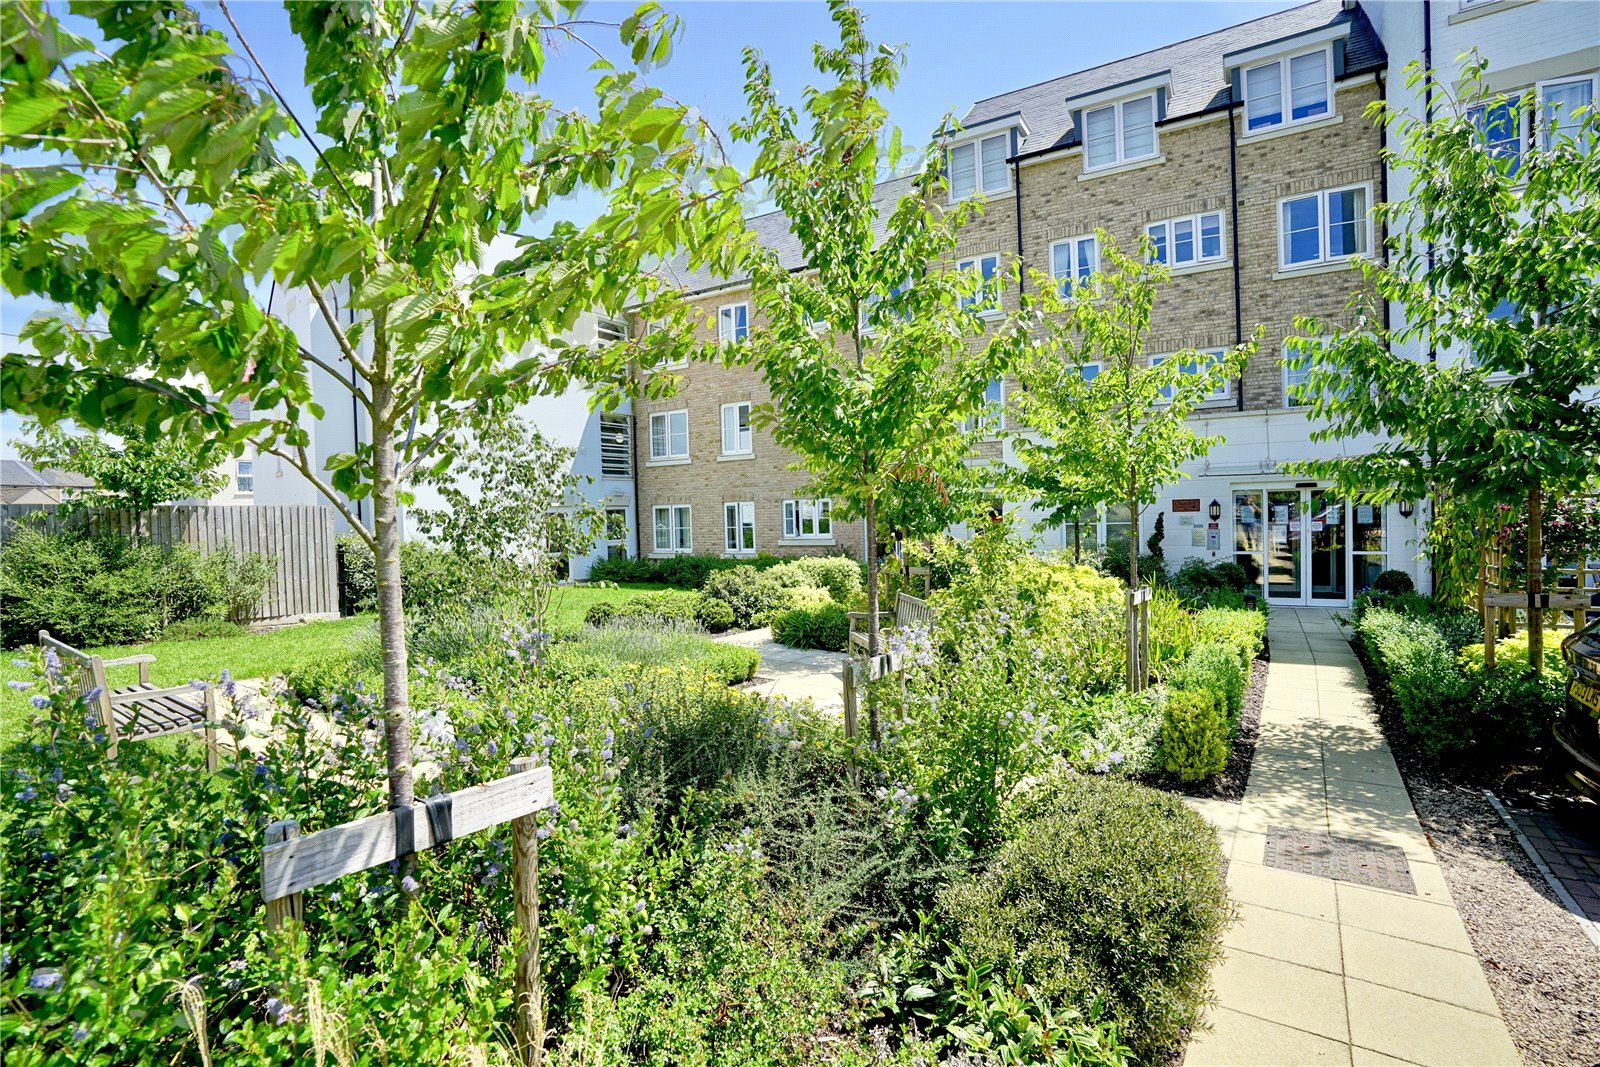 2 bed apartment for sale in Edison Bell Way, PE29 3FD, PE29